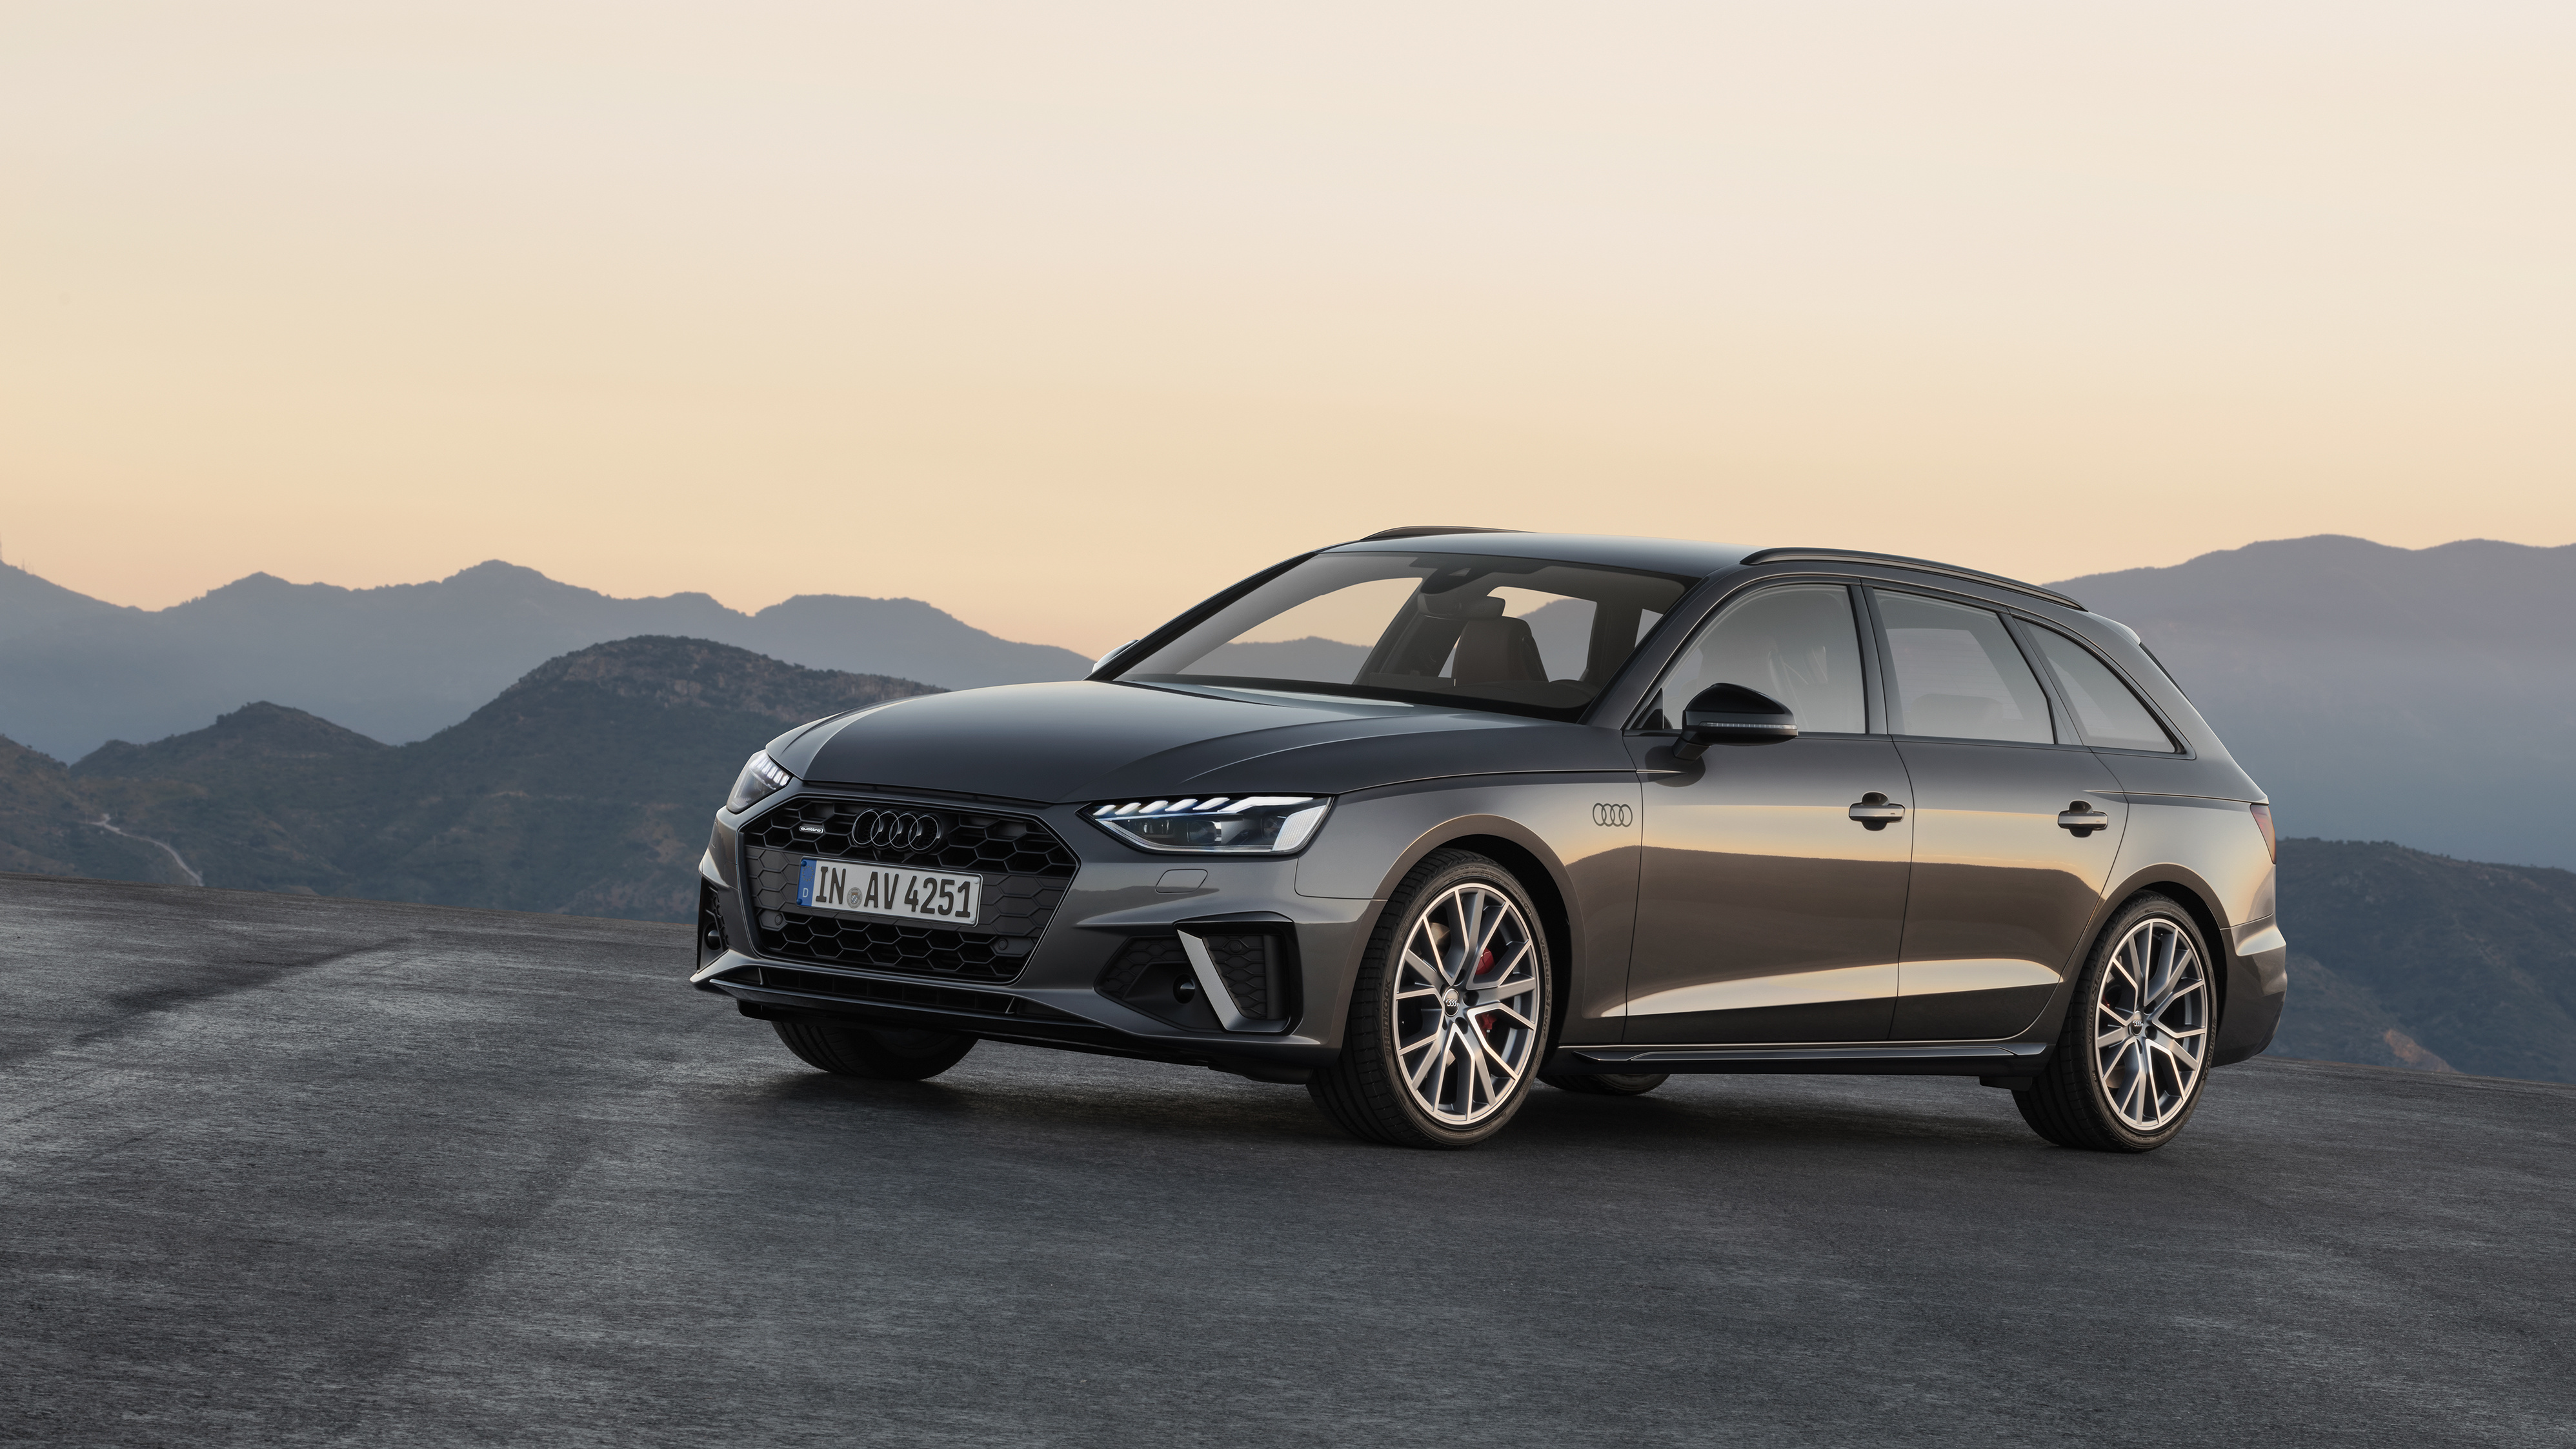 2020 Audi A4 Avant Pictures, Photos, Wallpapers. | Top Speed